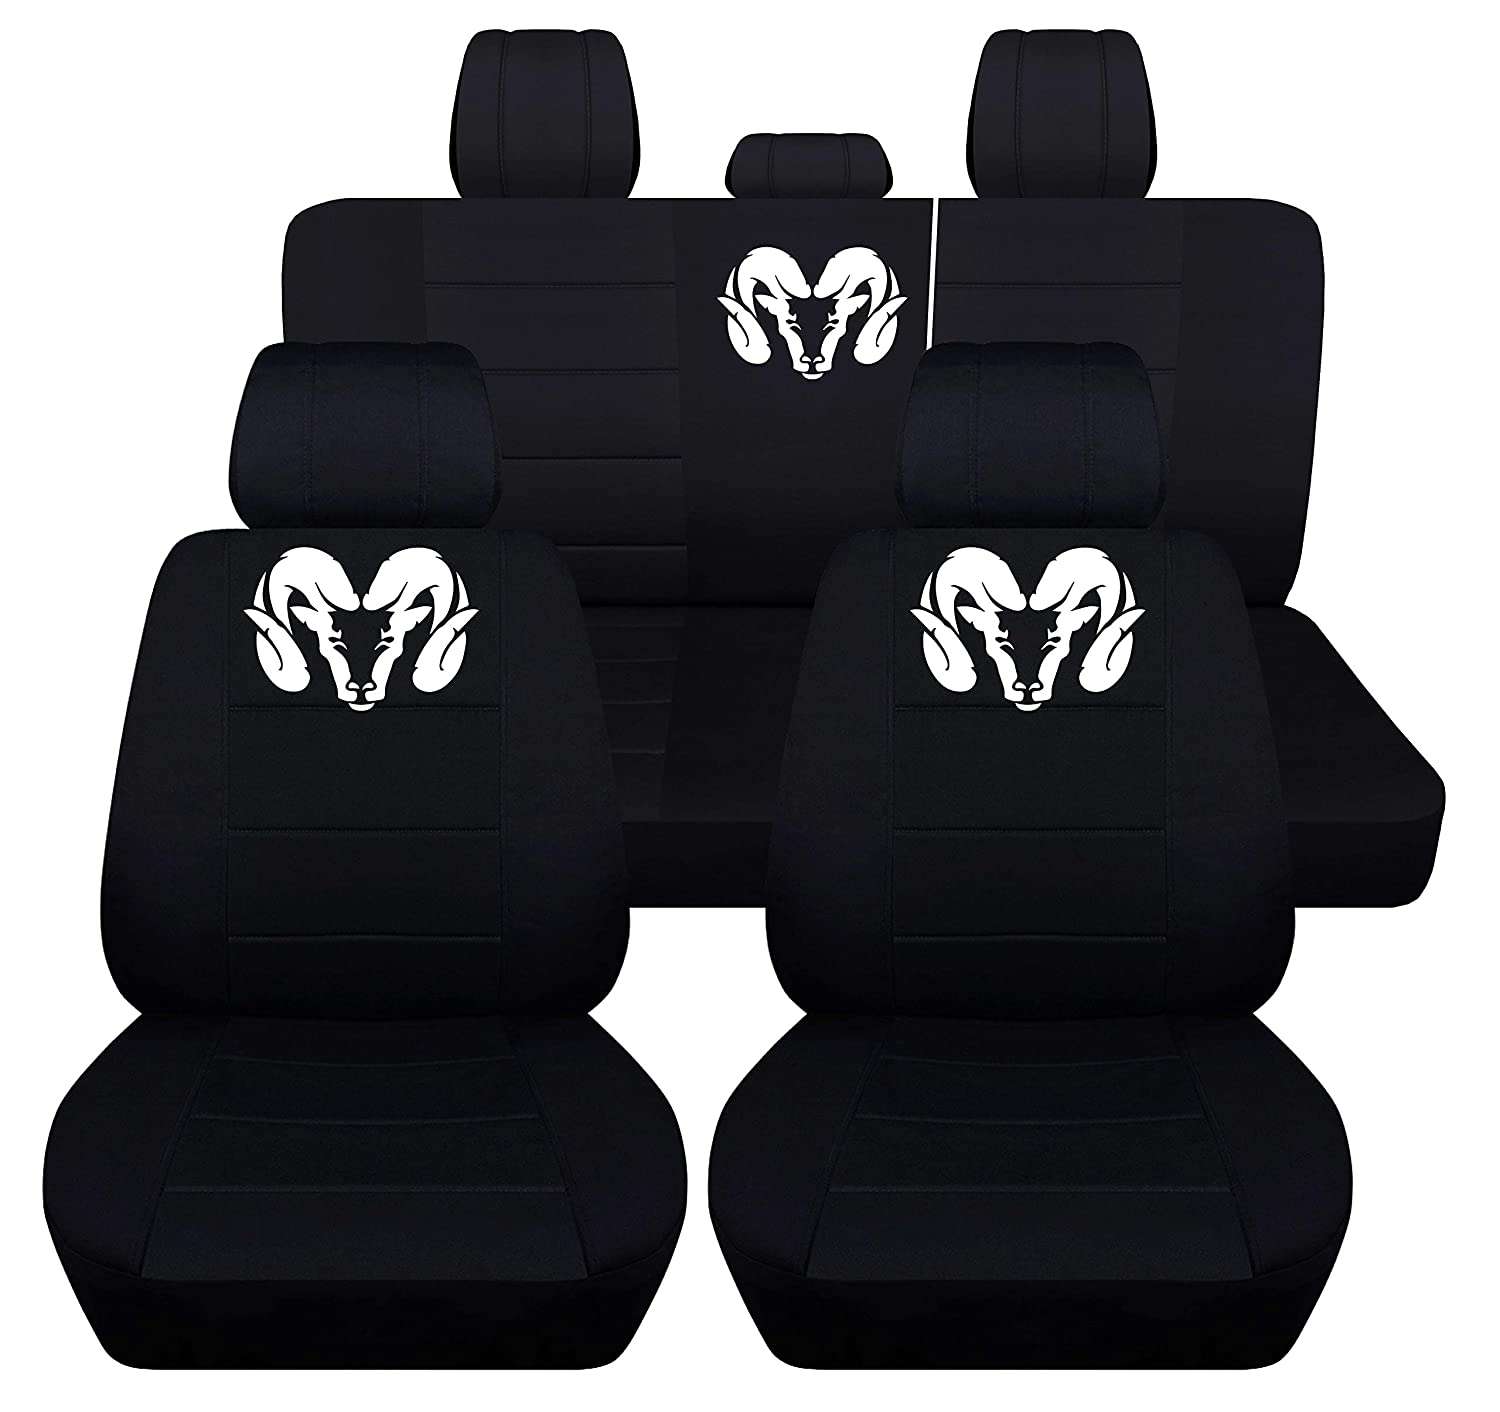 Fits 2012 to 2018 Dodge Ram Front and Rear Ram Seat Covers 22 Color Options (40-60 Rear, Black White) Designcovers